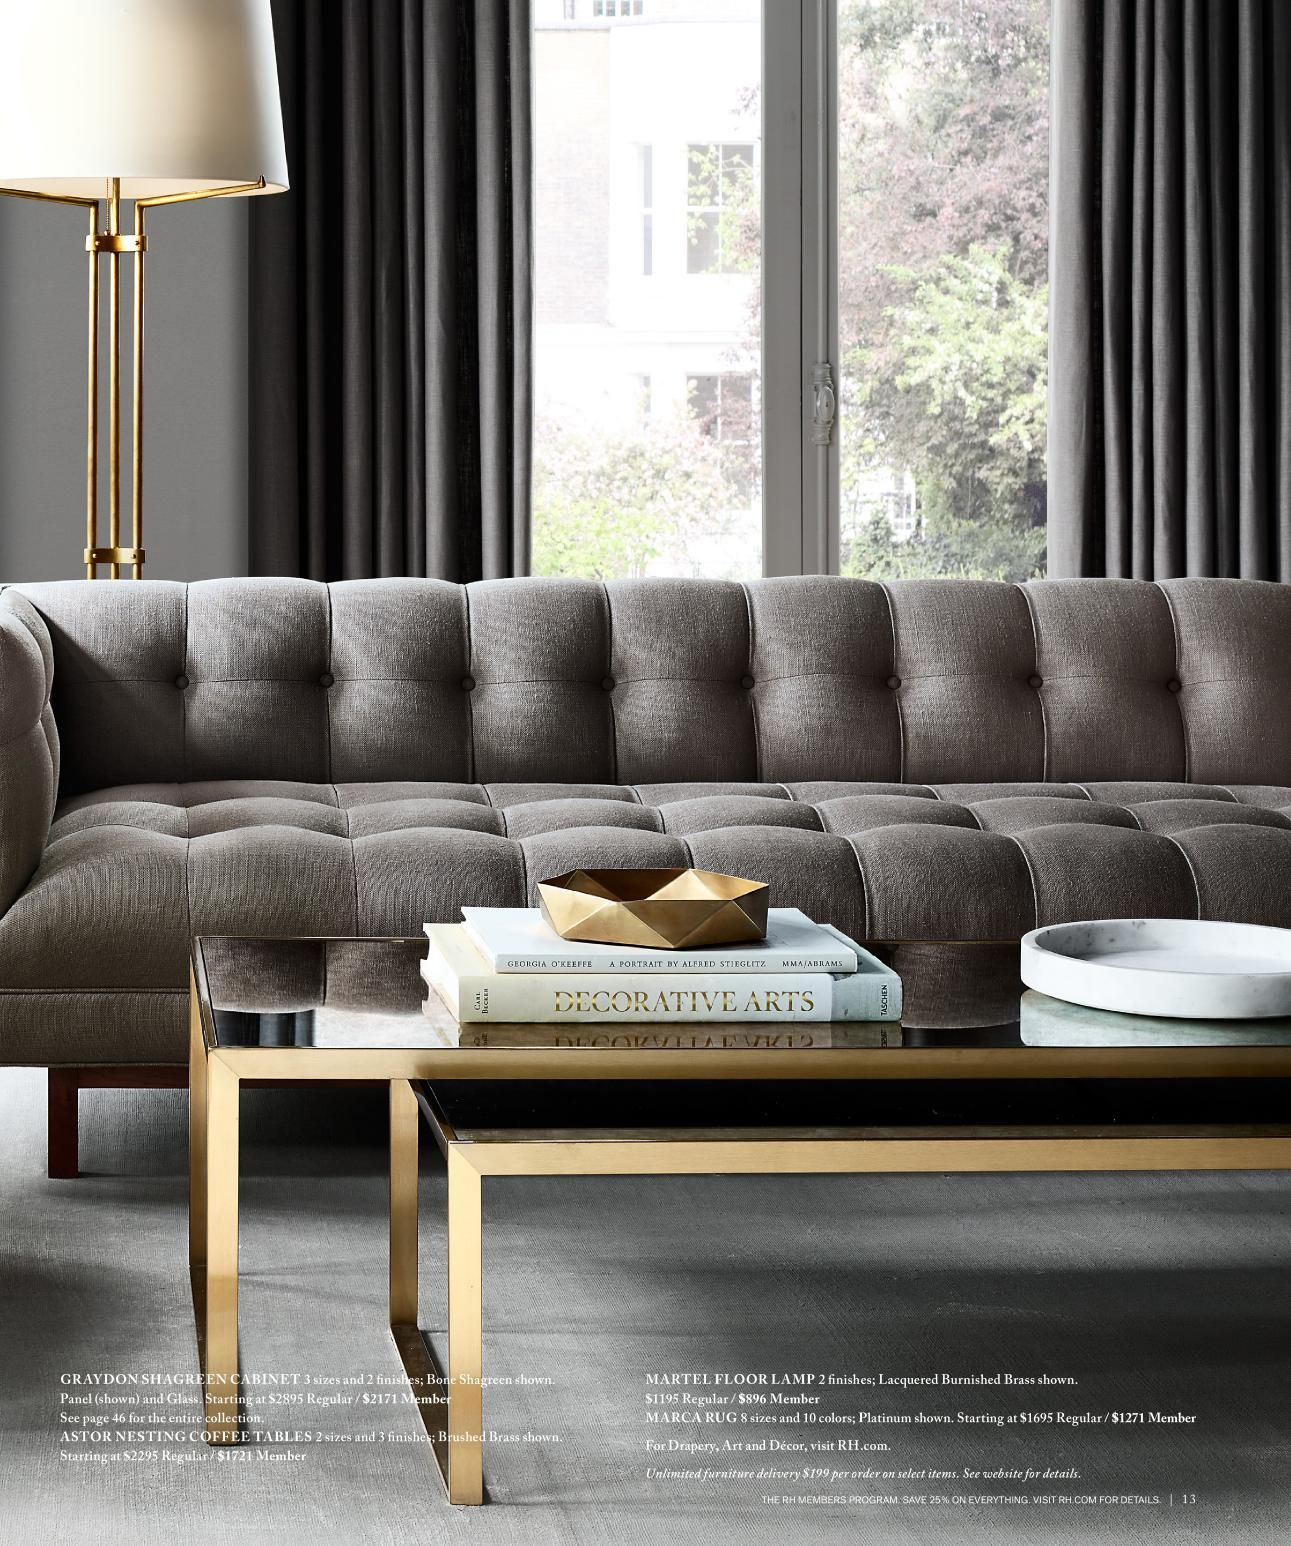 Restoration Hardware Modern: 1950 Tuxedo Reimagined! Introducing The Madison Collection